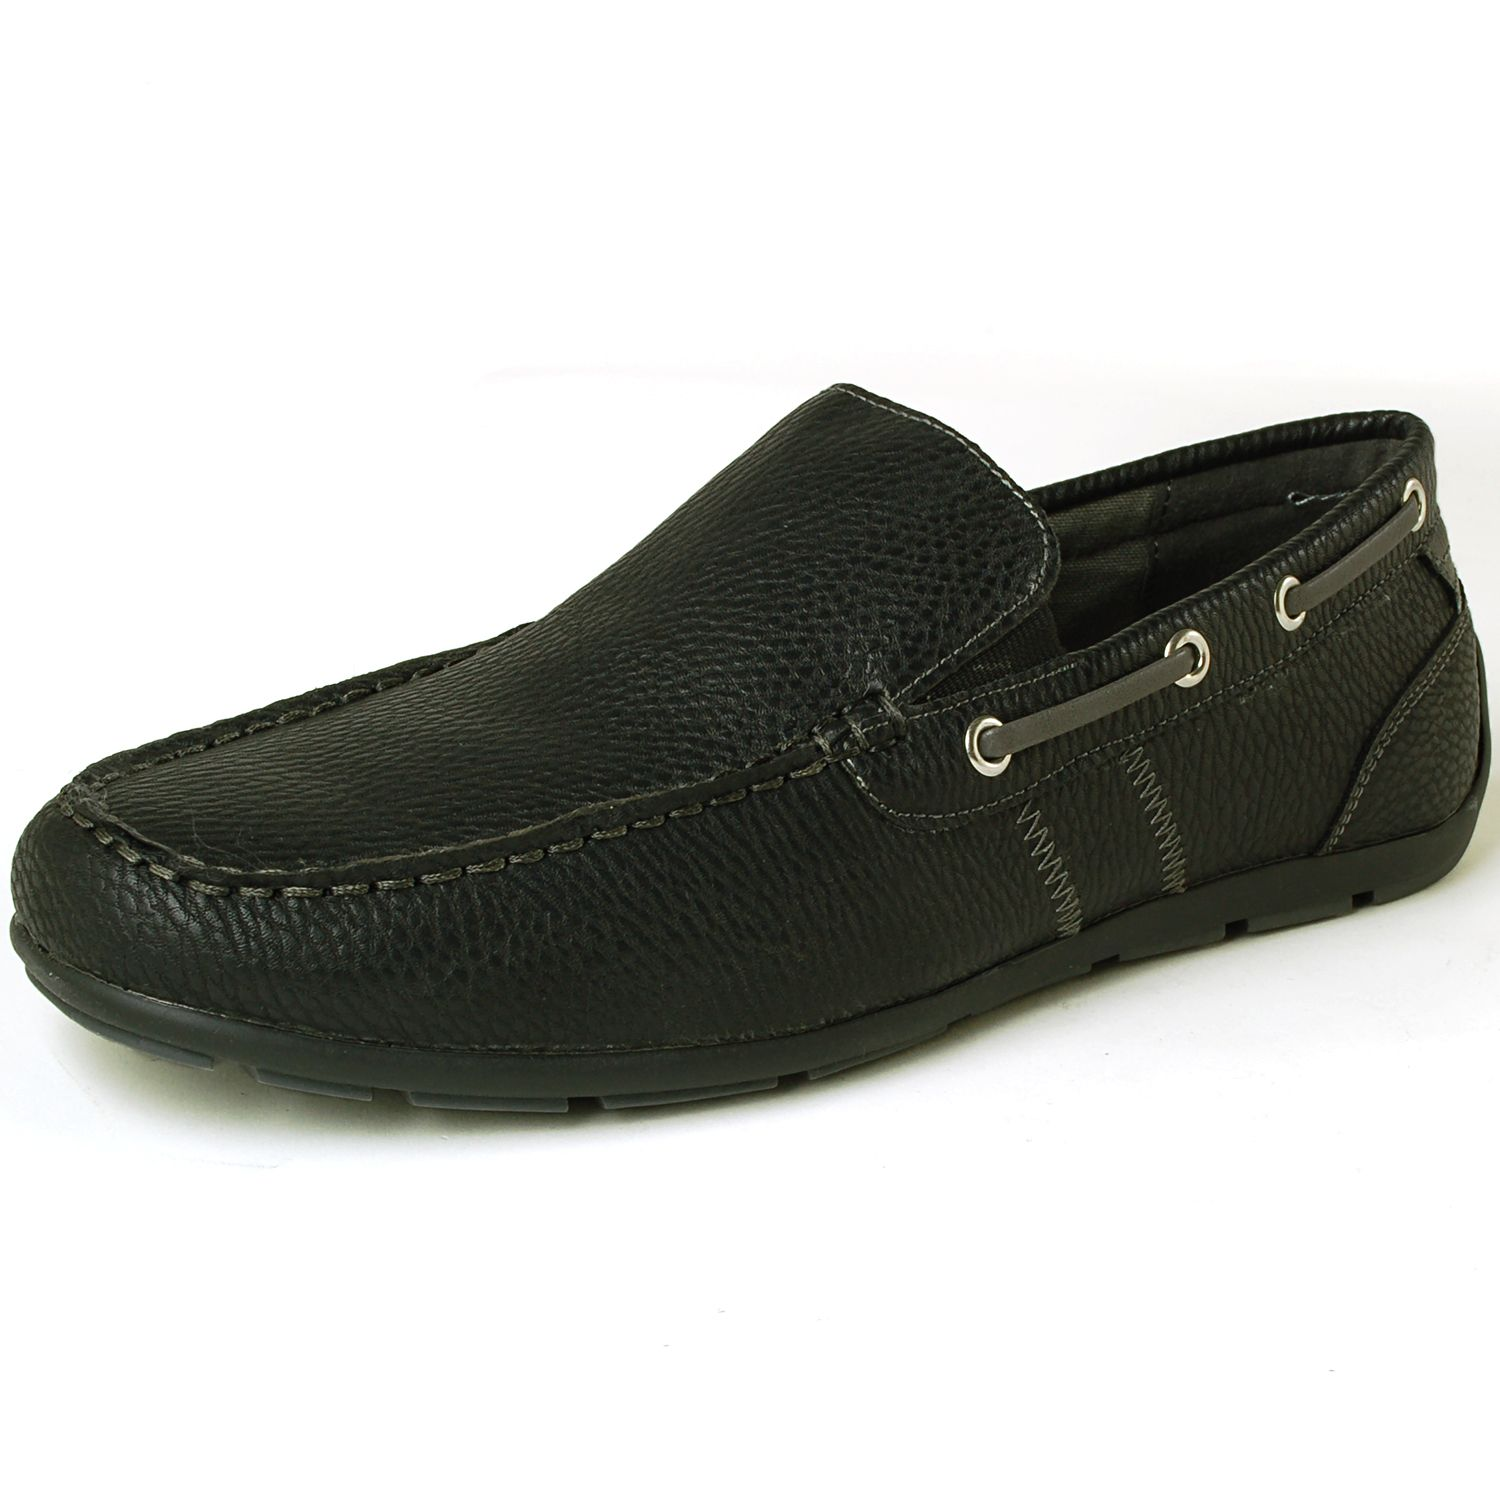 Round Toe Slip-On Synthetic Casual Boat Shoes Loafers For Men